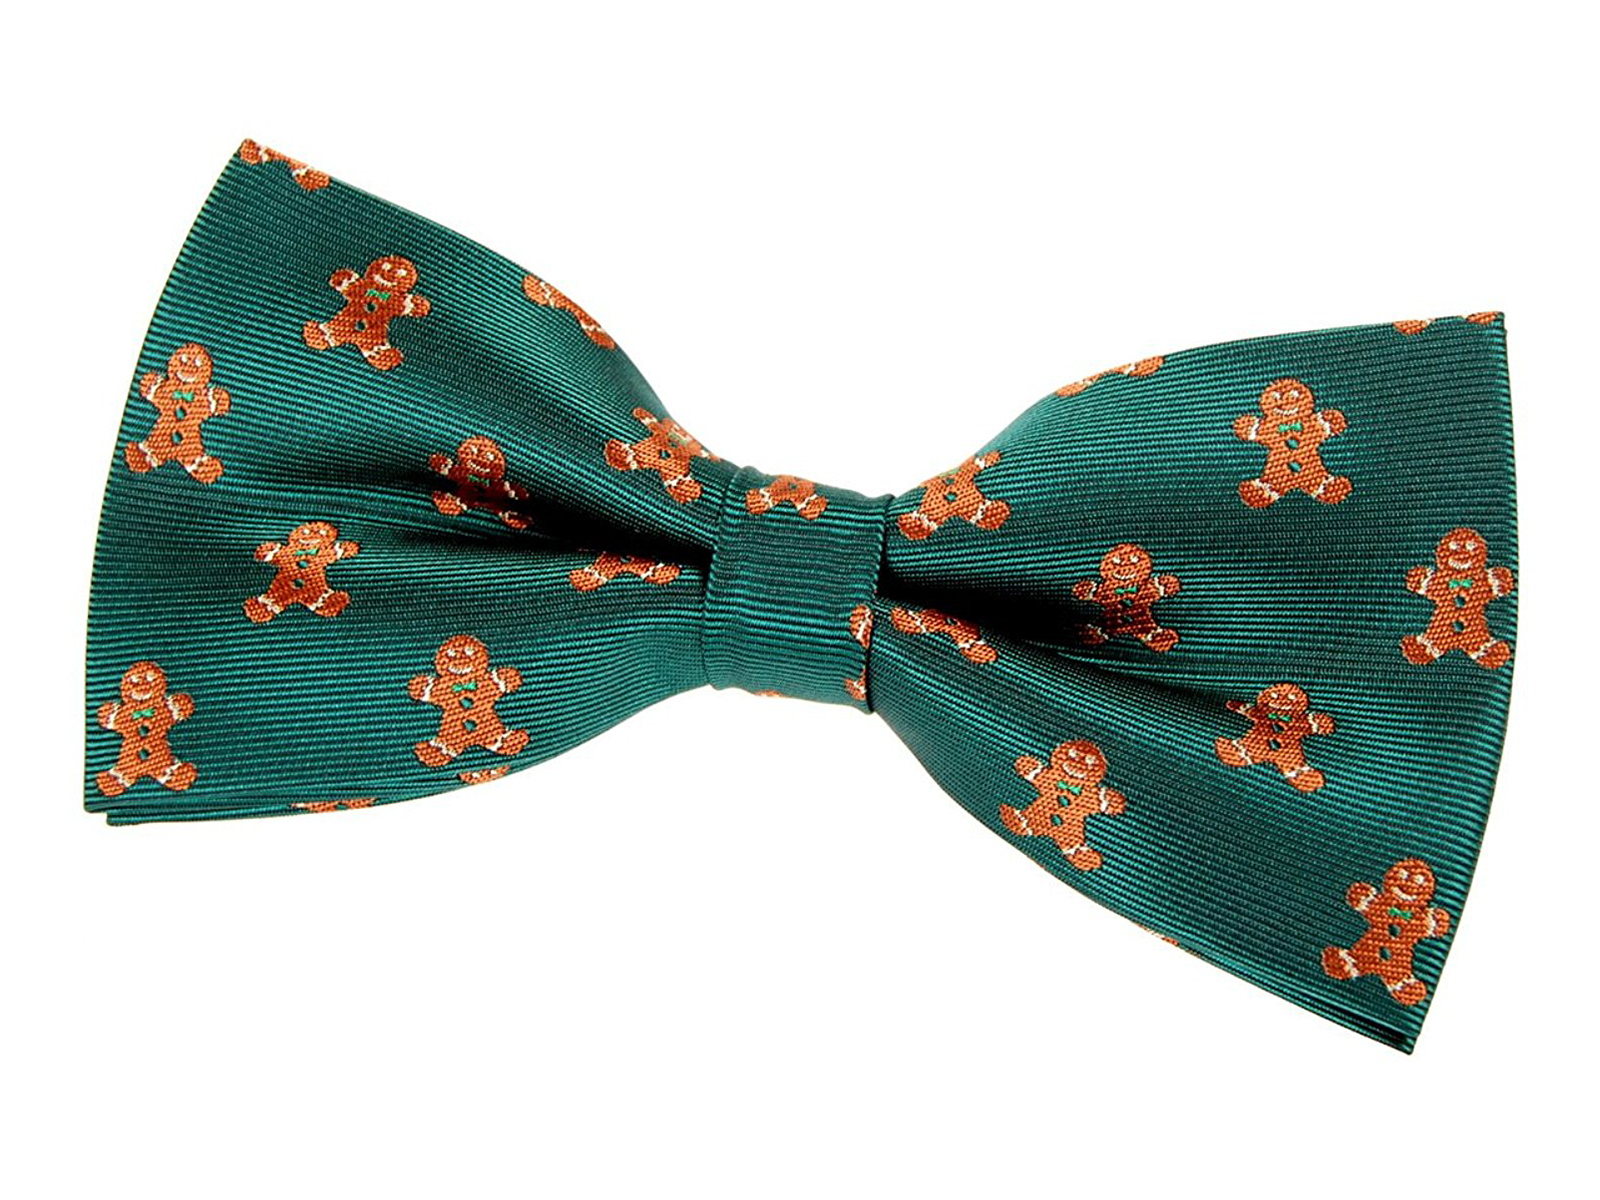 green bowtie with gingerbread men